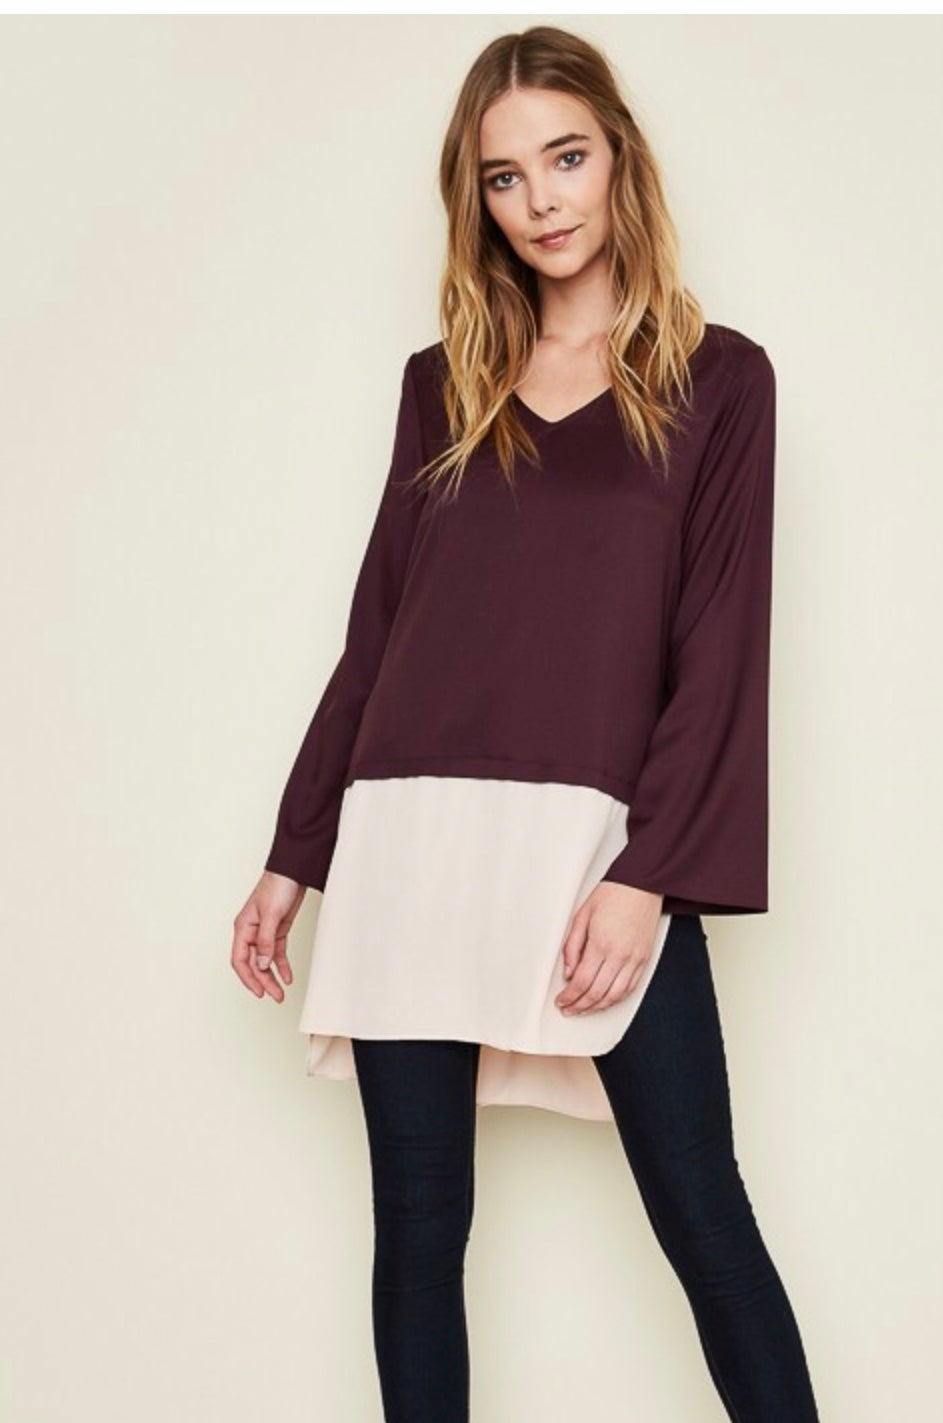 Nura's Long Sleeve Half Sheer Top